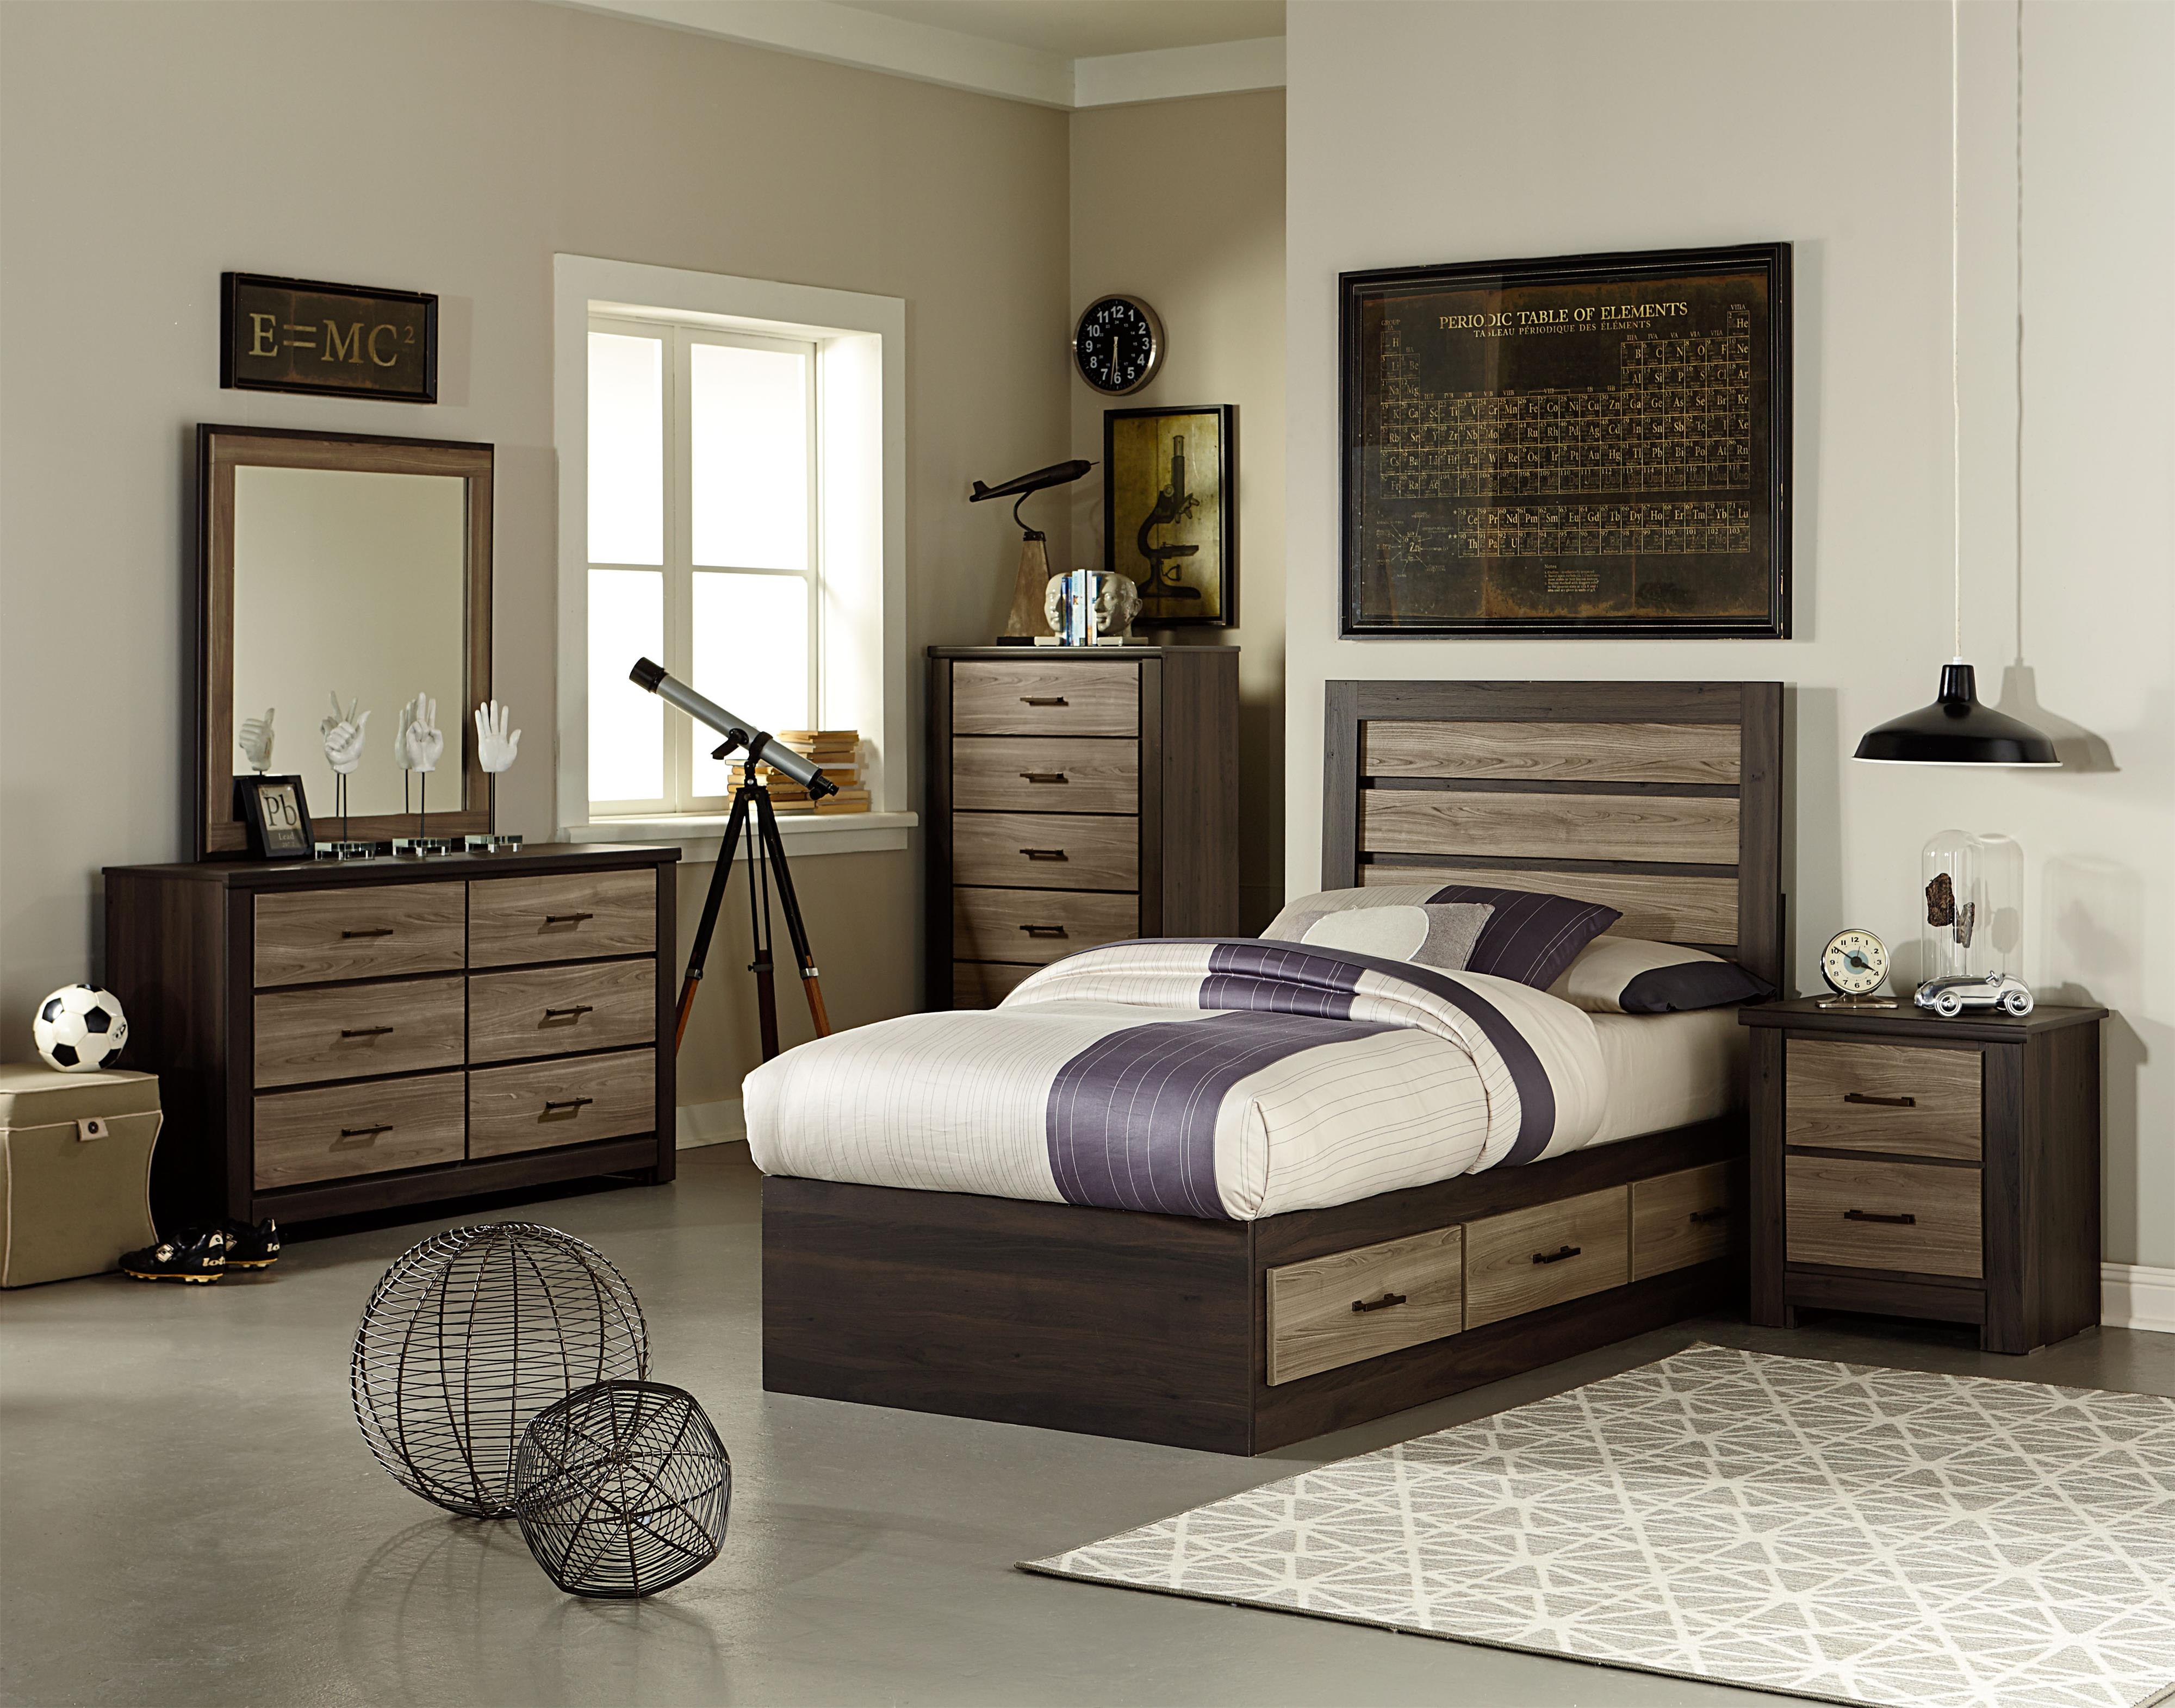 Standard Furniture Oakland Twin Bedroom Group With Captain 39 S Bed Olinde 39 S Furniture Bedroom